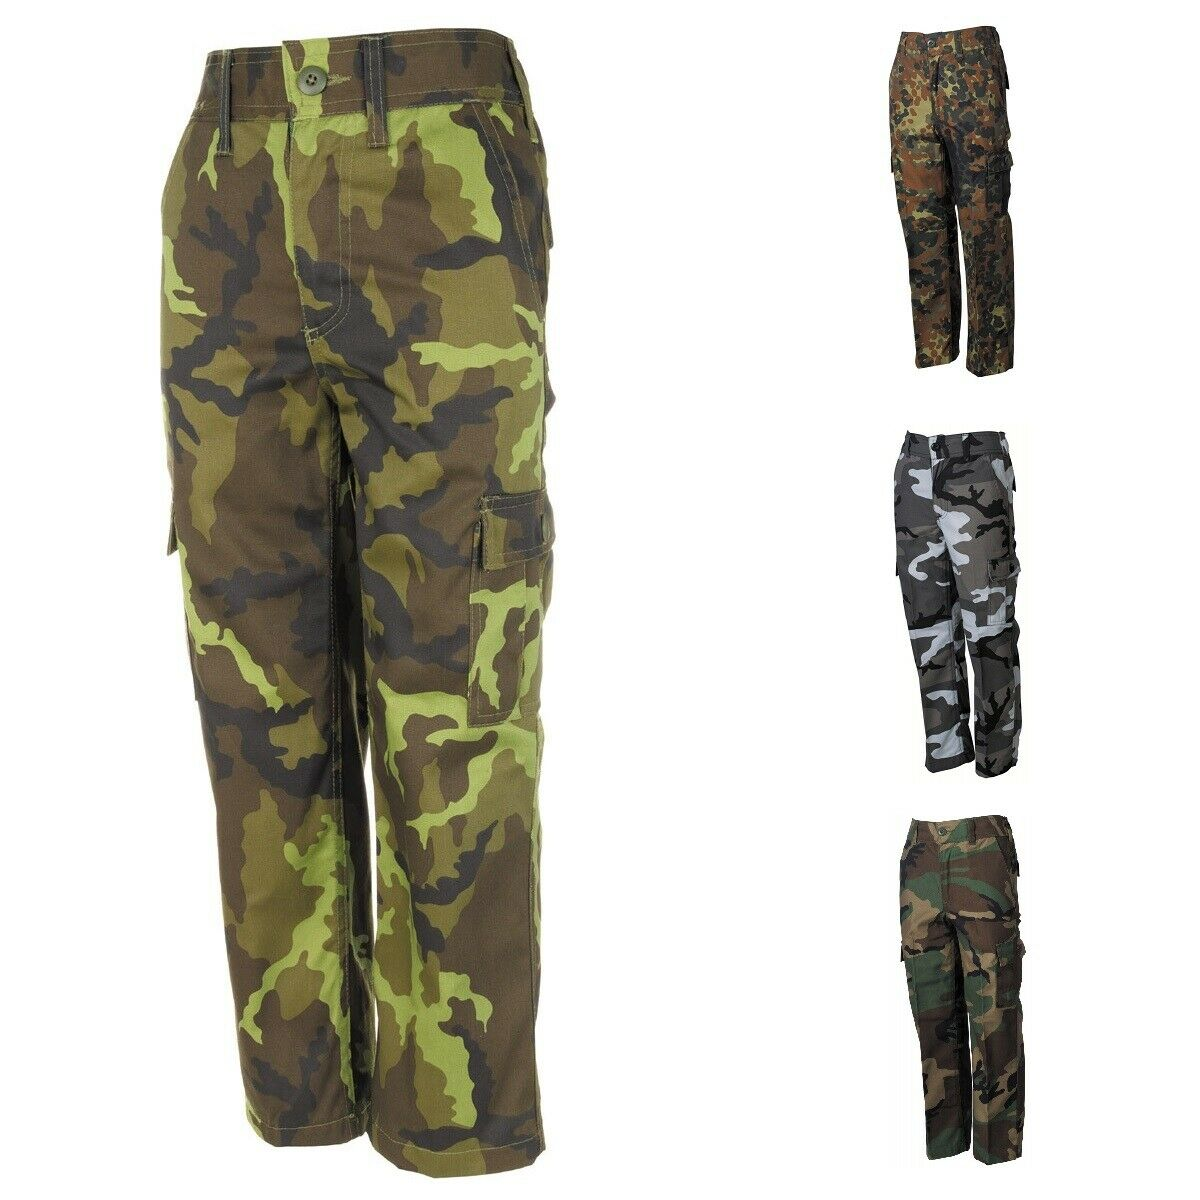 hose kinder feldhose m dchen jungen camouflage karnveal fasching bw bundeswehr eur 17 90. Black Bedroom Furniture Sets. Home Design Ideas